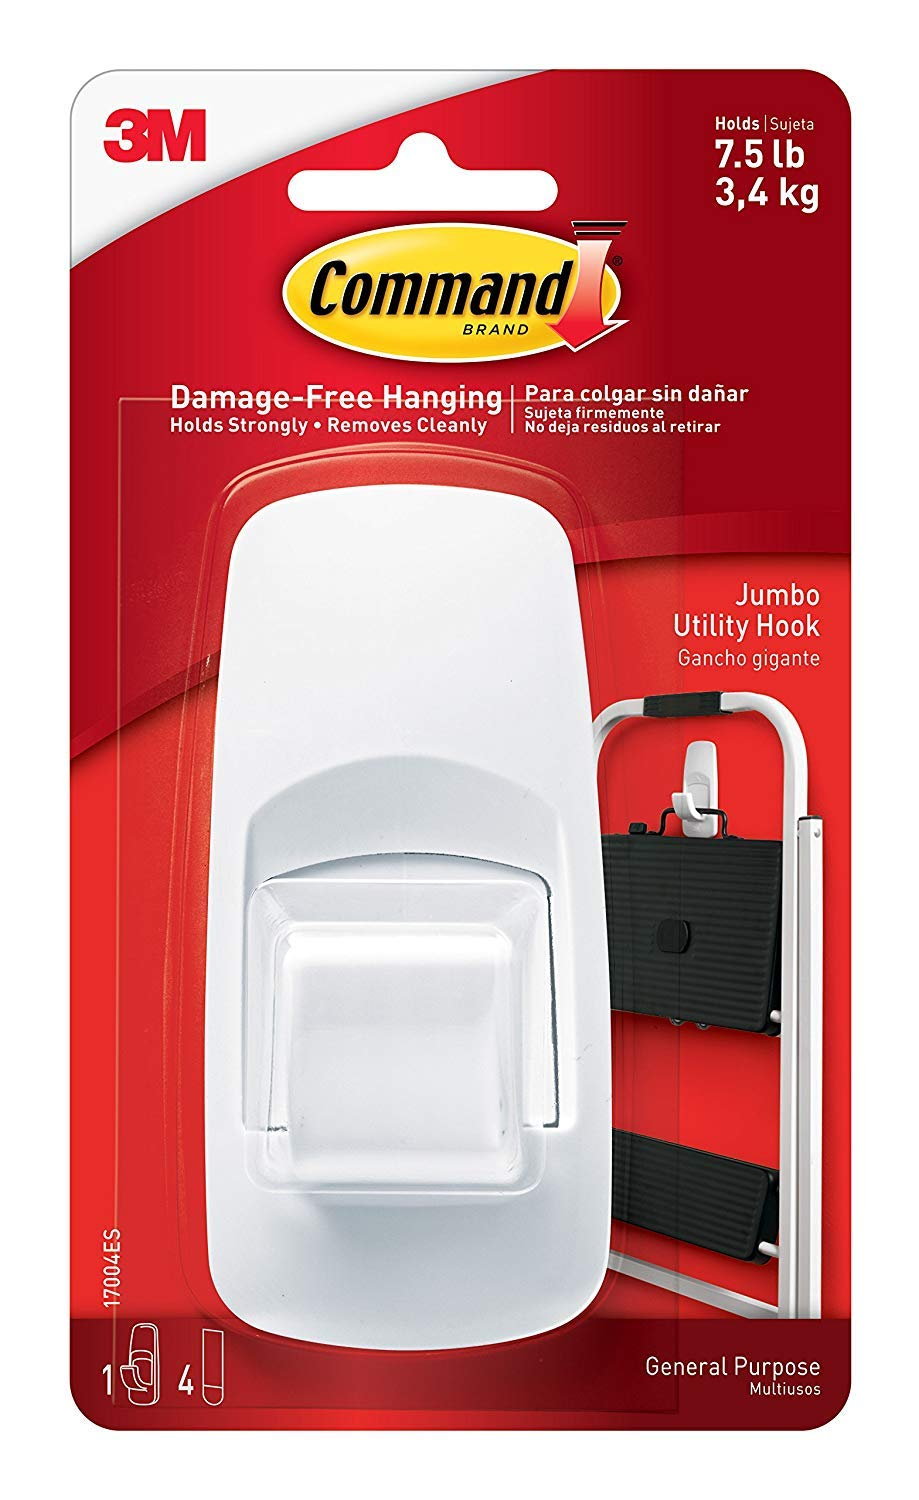 Command Jumbo Plastic Hook with Adhesive Strips FQZT6, 2-Hooks